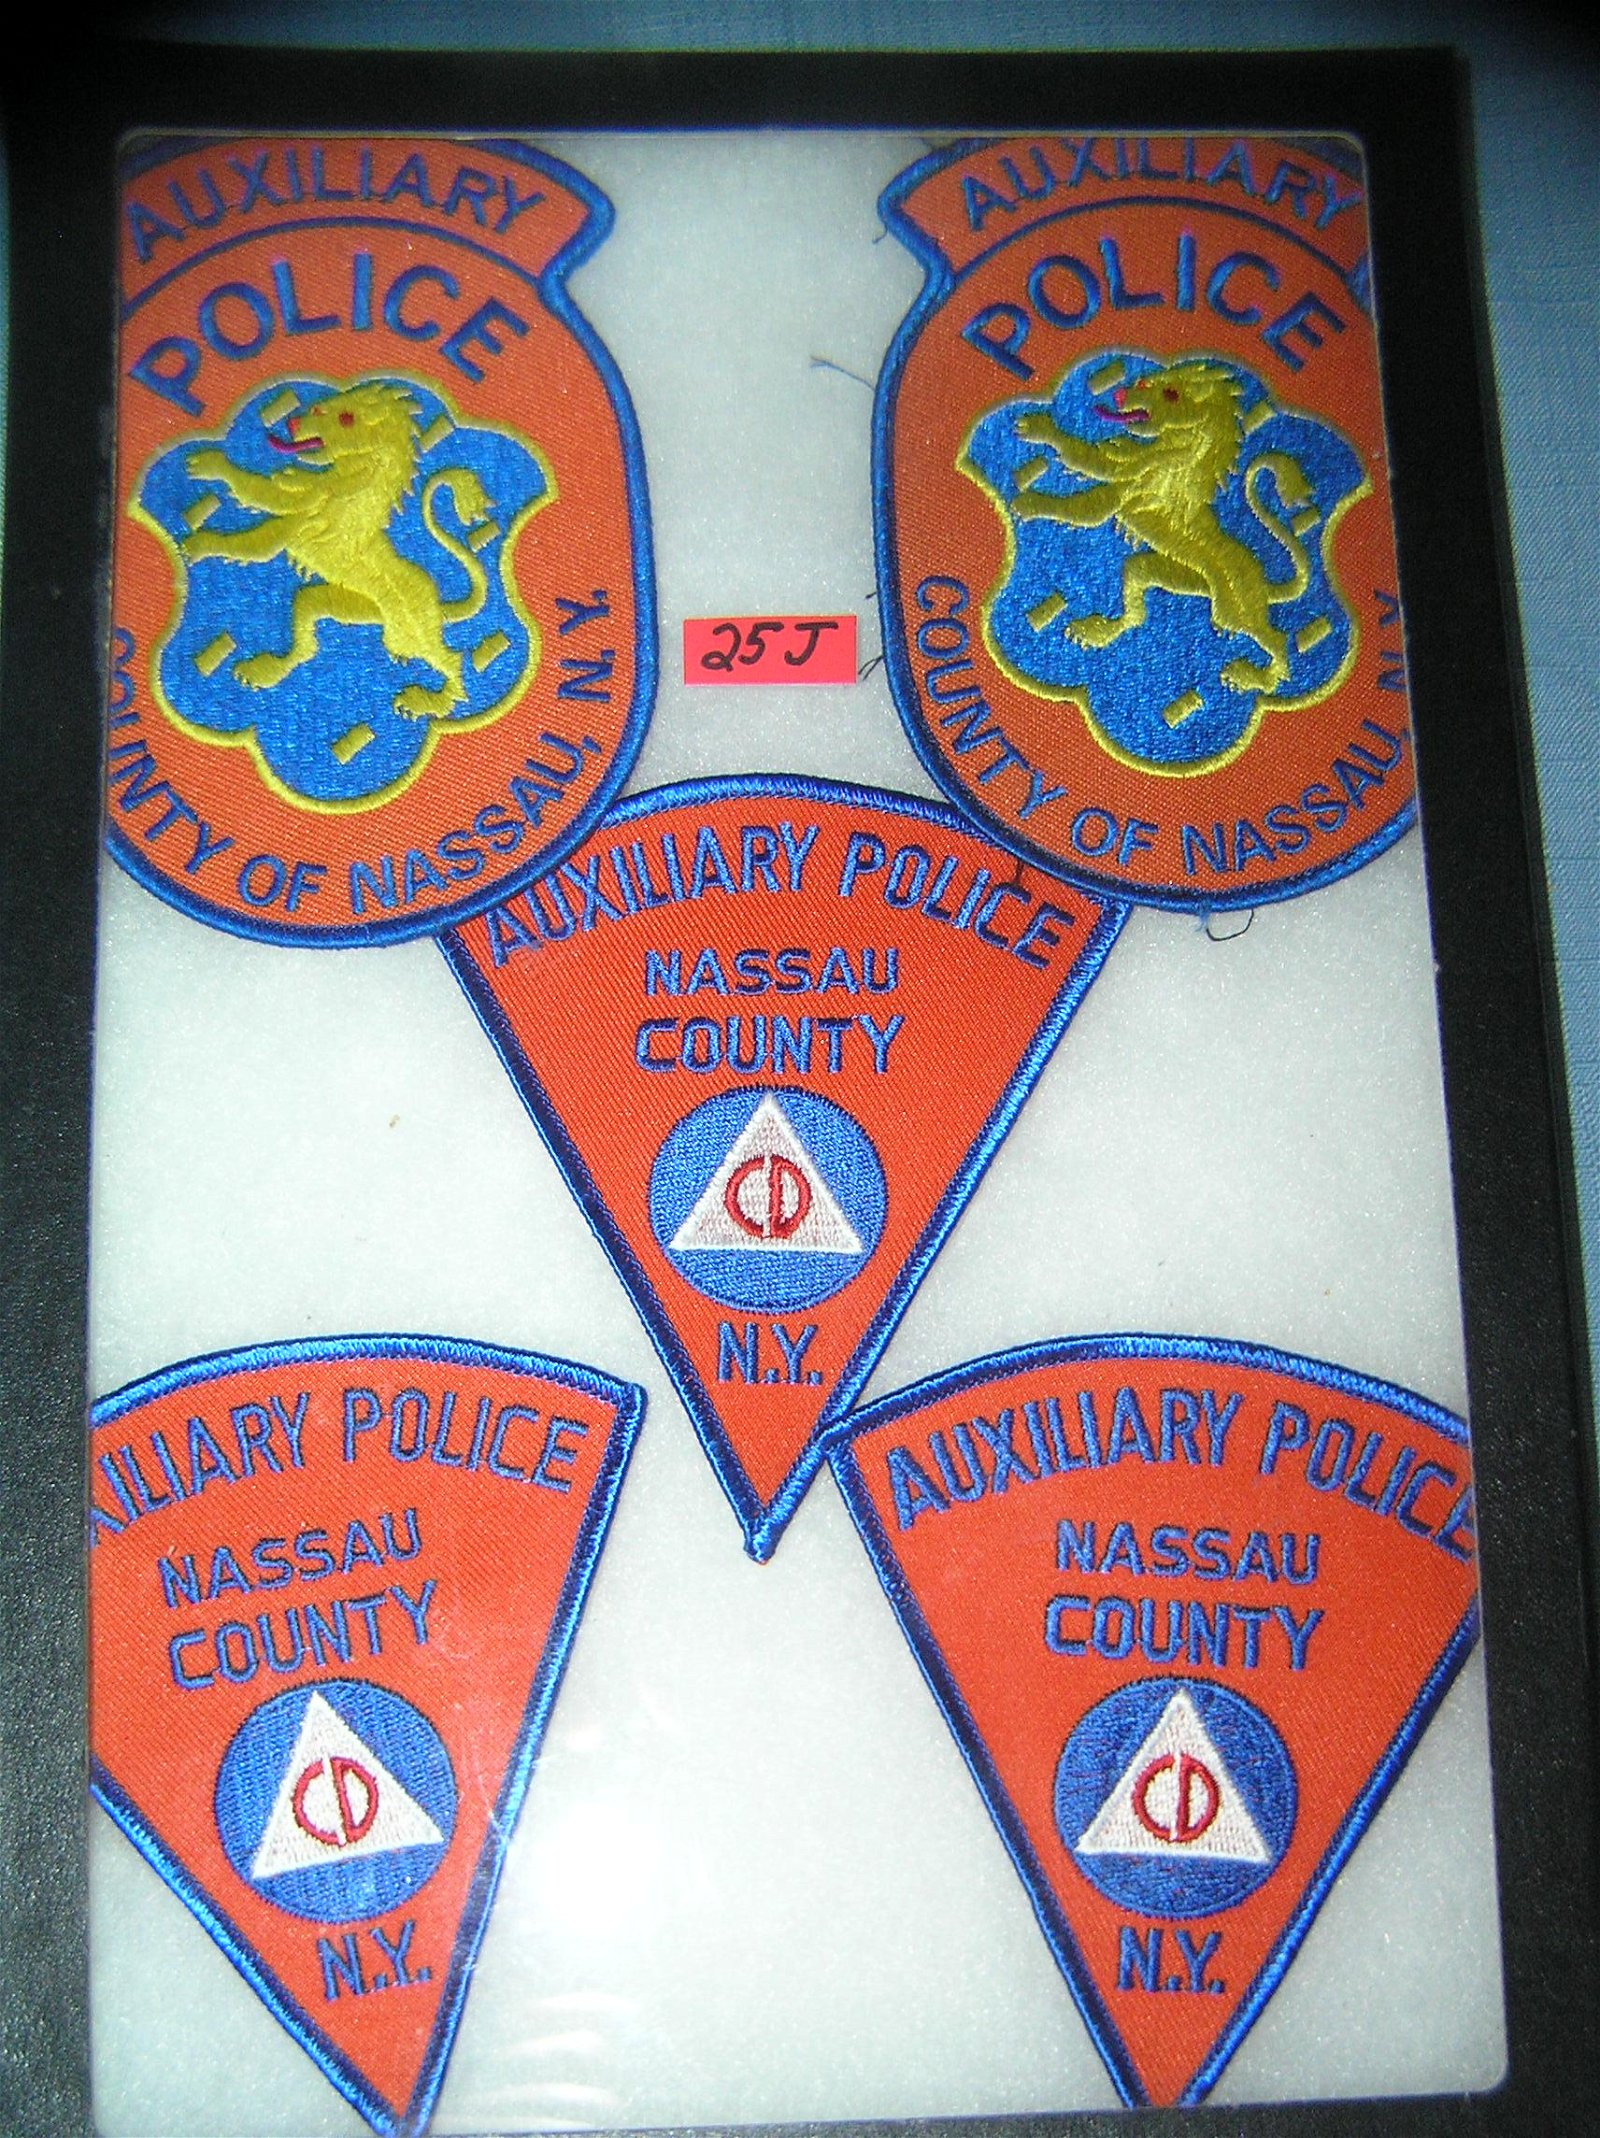 Collection of vintage police patches